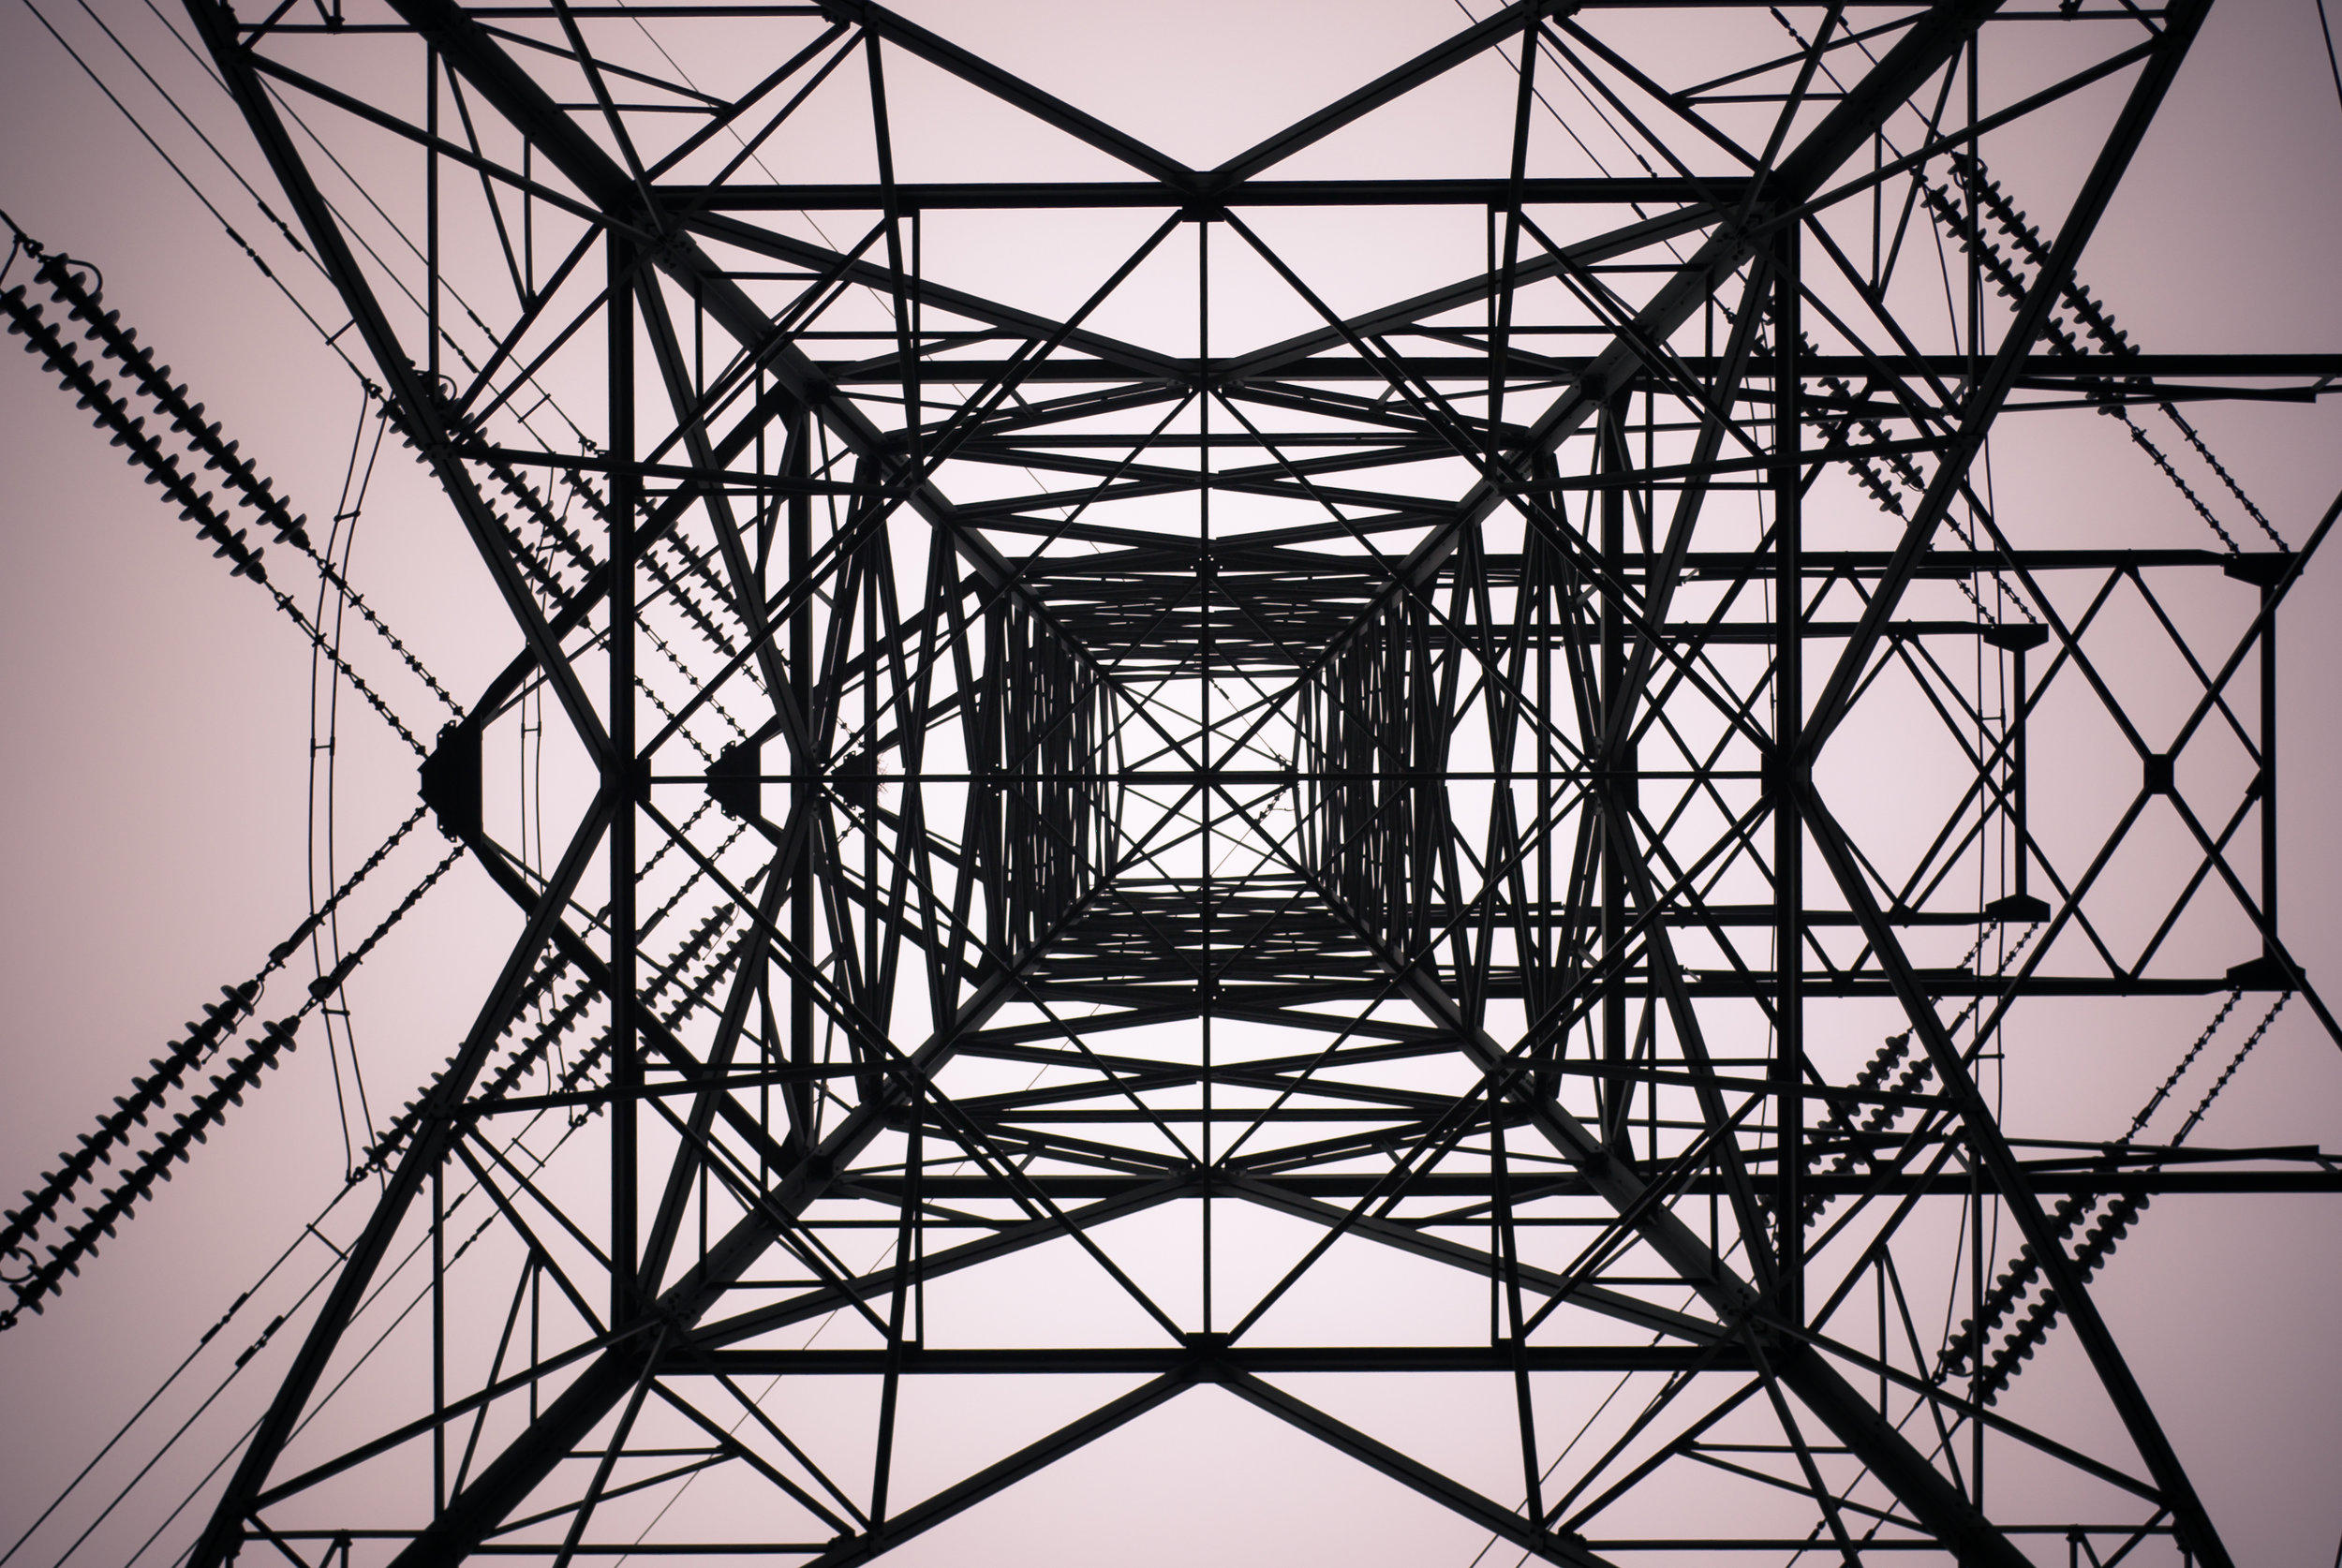 maintenance project optimisation - Client:Electricity Utility FirmServices Provided:Schedule Risk Analysis, Project Management, Engineering Expertise